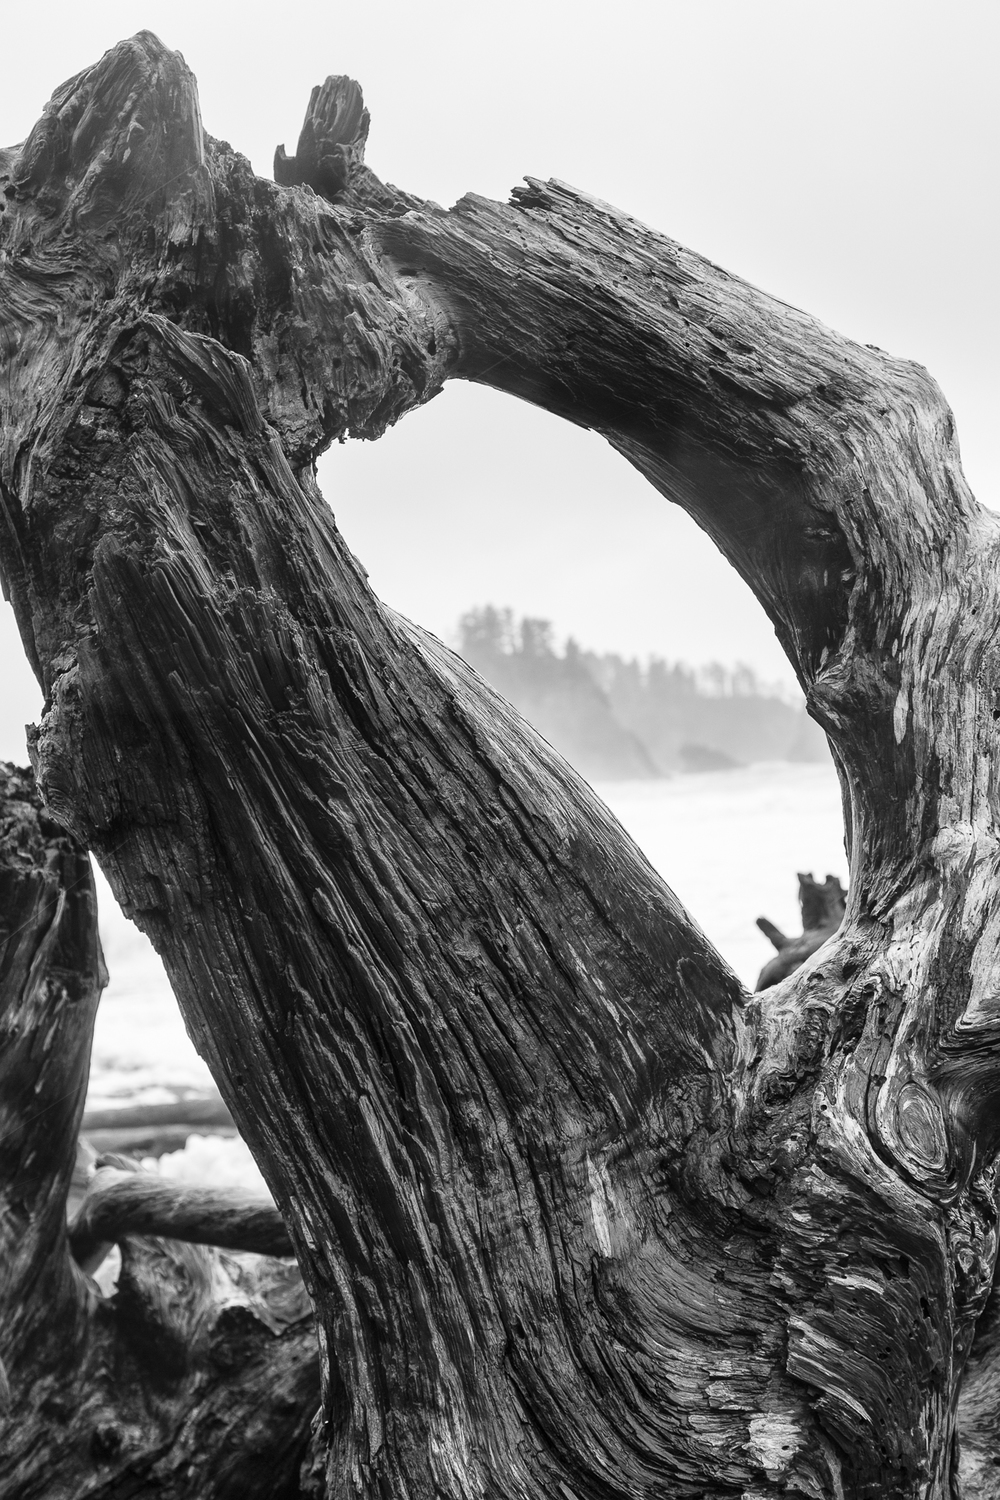 Driftwood on Rialto Beach.